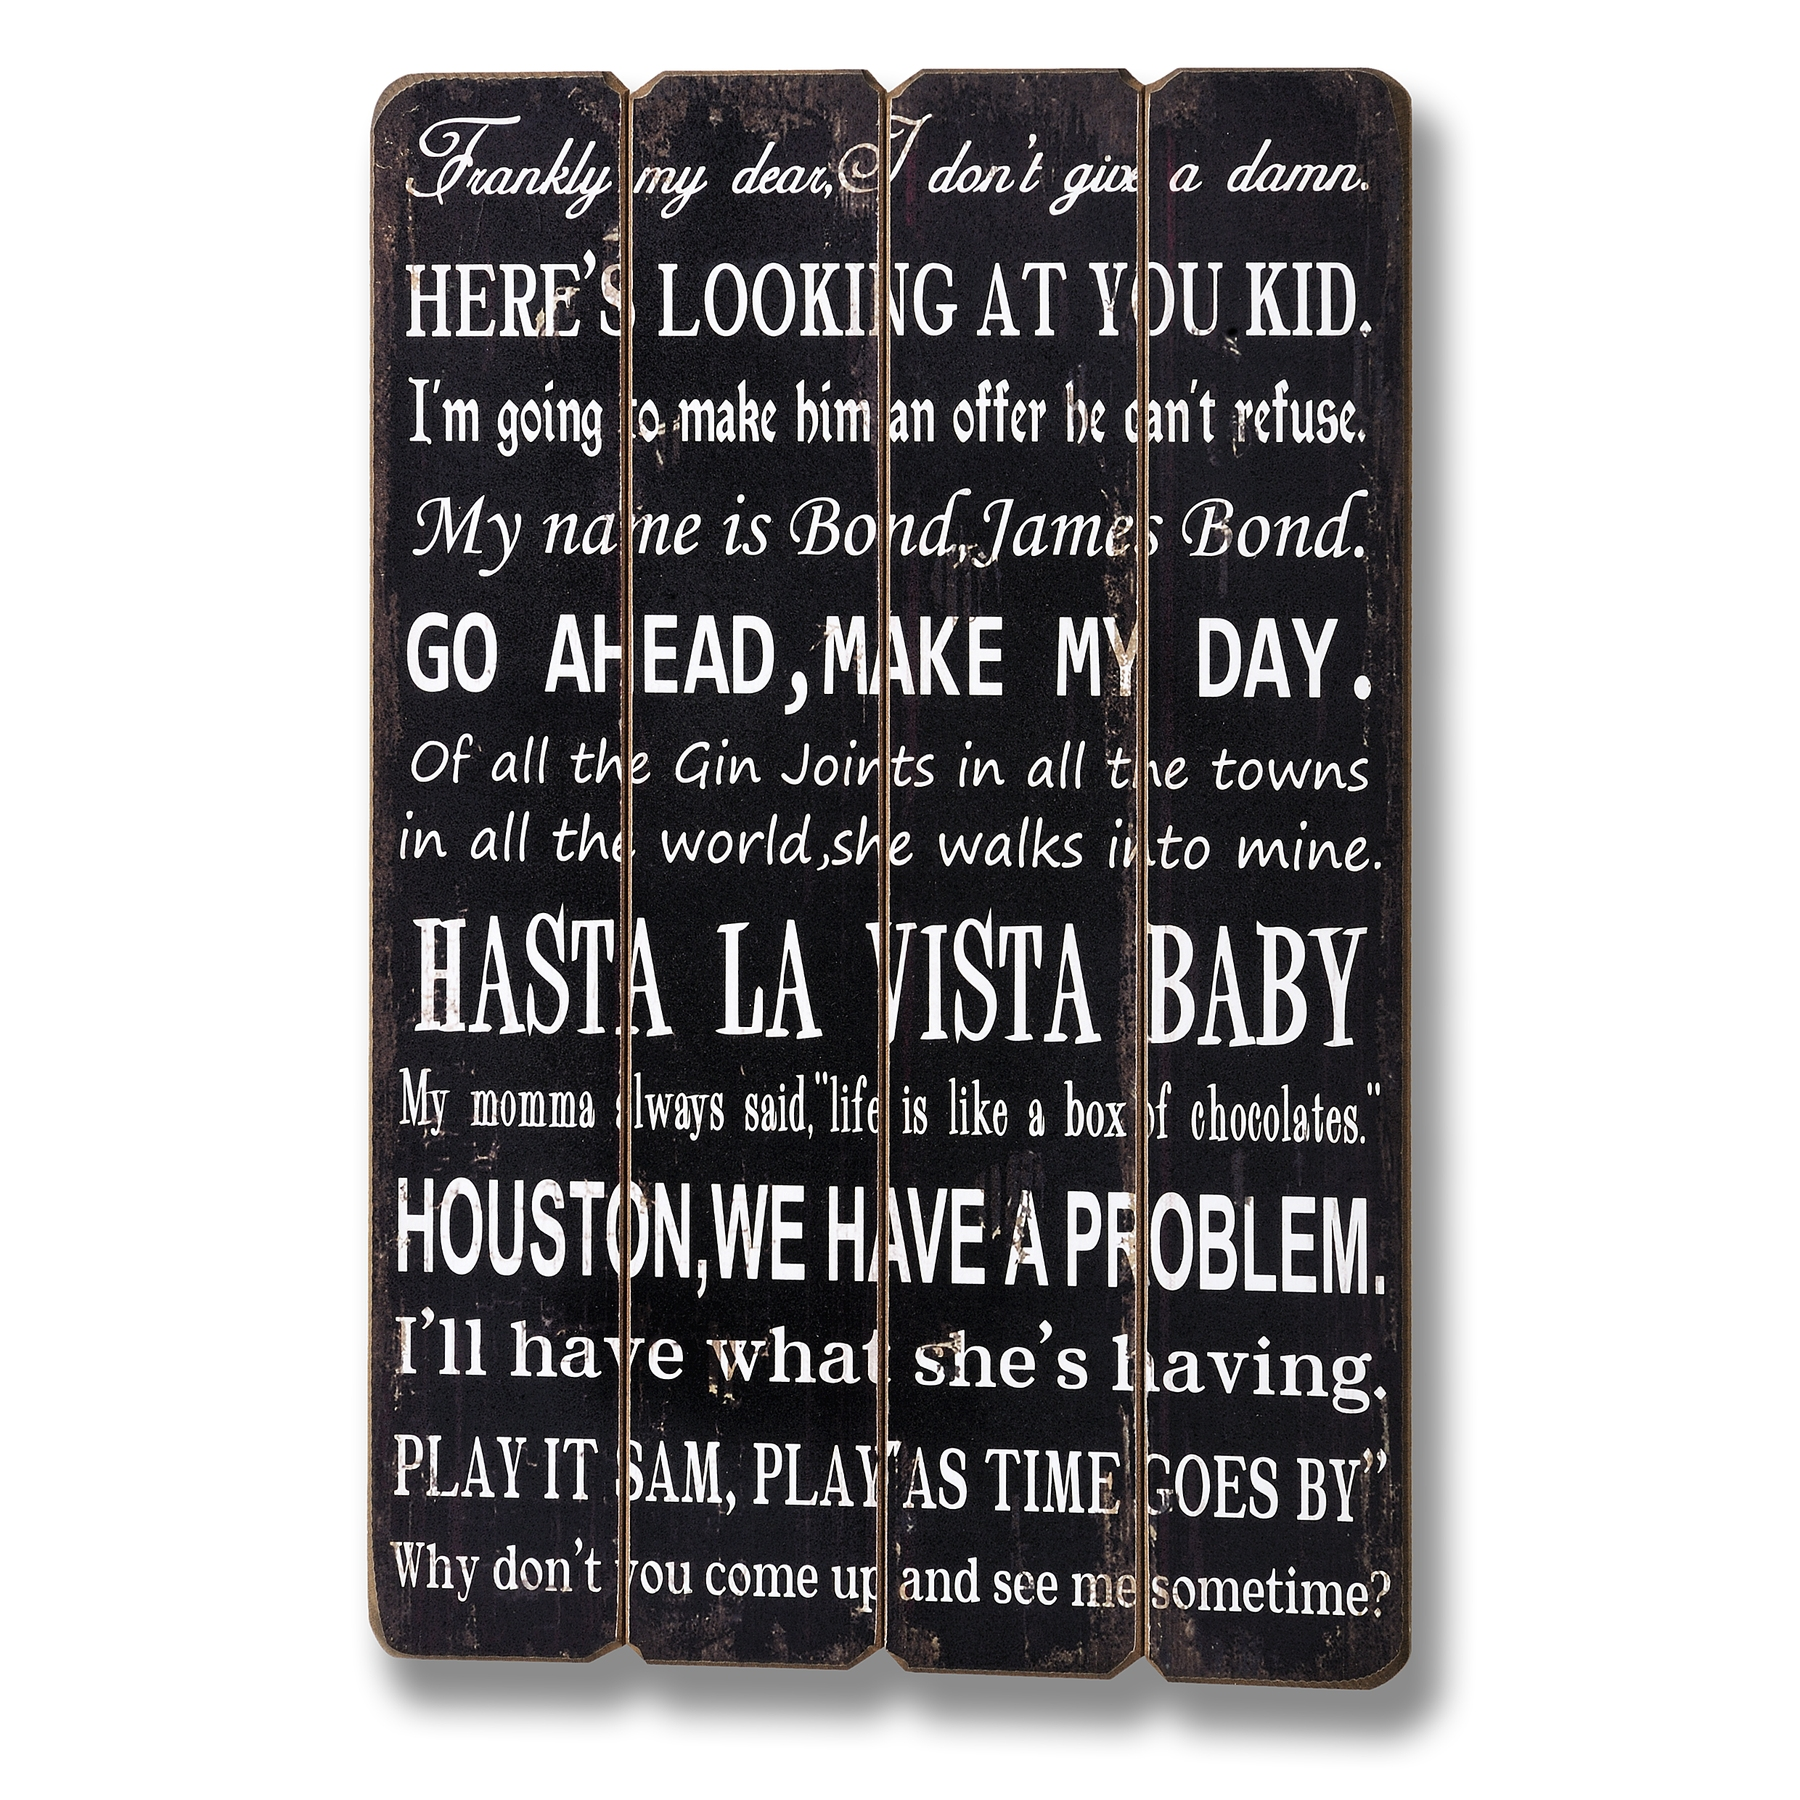 Quote Plaques: Wall Plaques With Sayings Or Quotes. QuotesGram